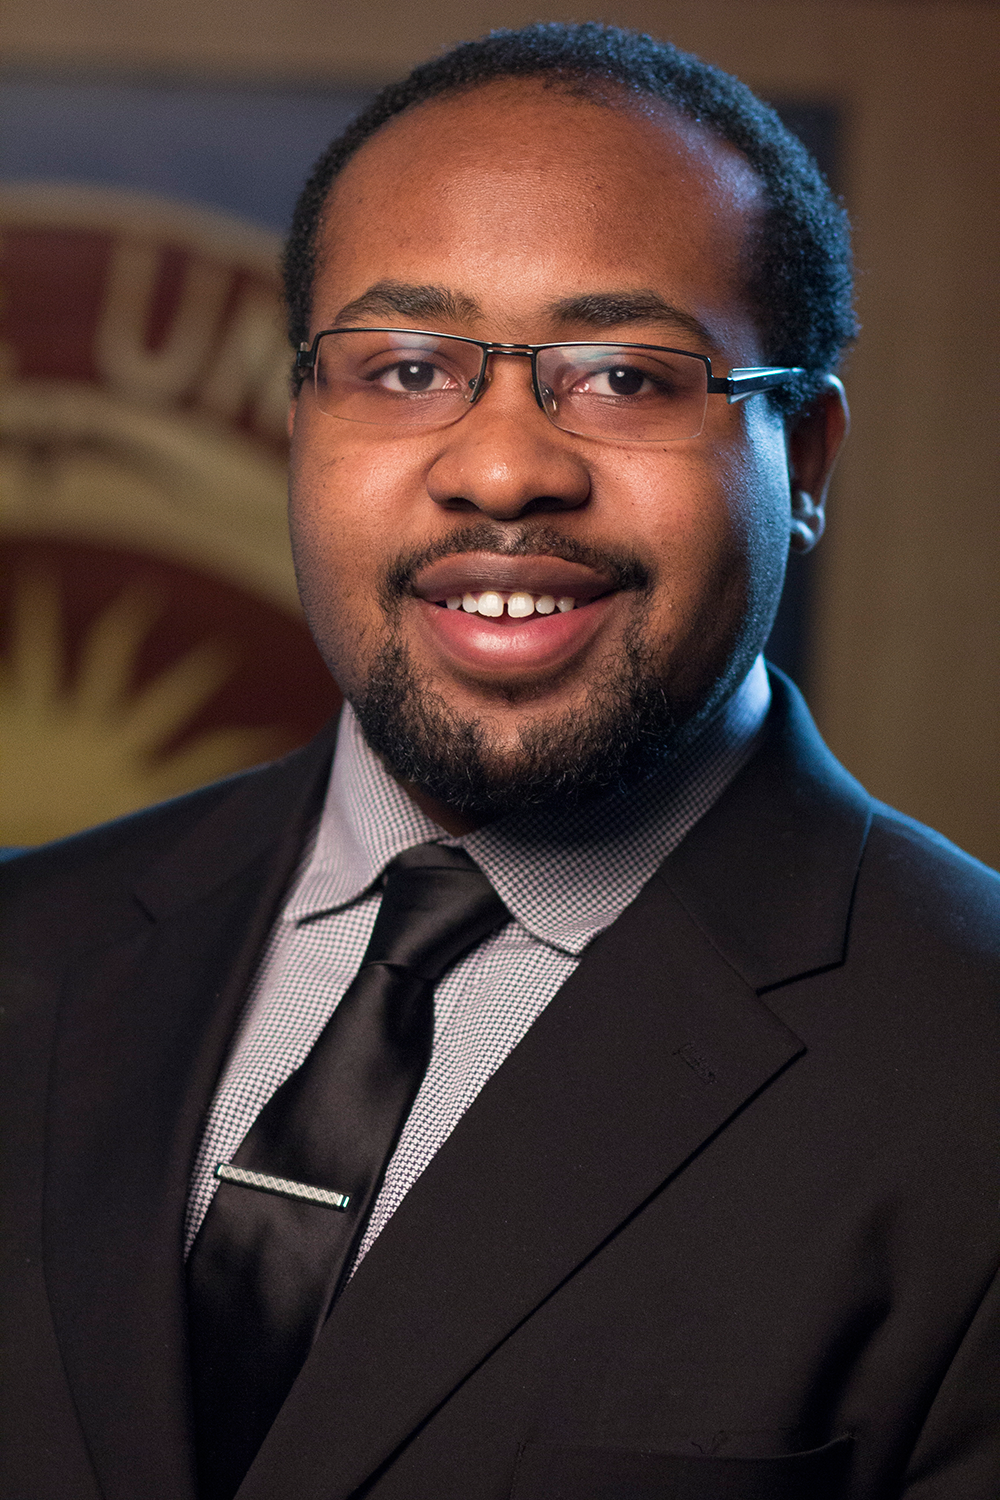 Senator for the College of Communication and Information Reginald Jones Rjones79@kent.edu Office Hours: Monday: 6:00 pm - 7:30 pm Tuesday: 11:00 am - 12:15 pm Wednesday: 7:00 pm - 8:00 pm Thursday: 11:00 am - 12:15 pm